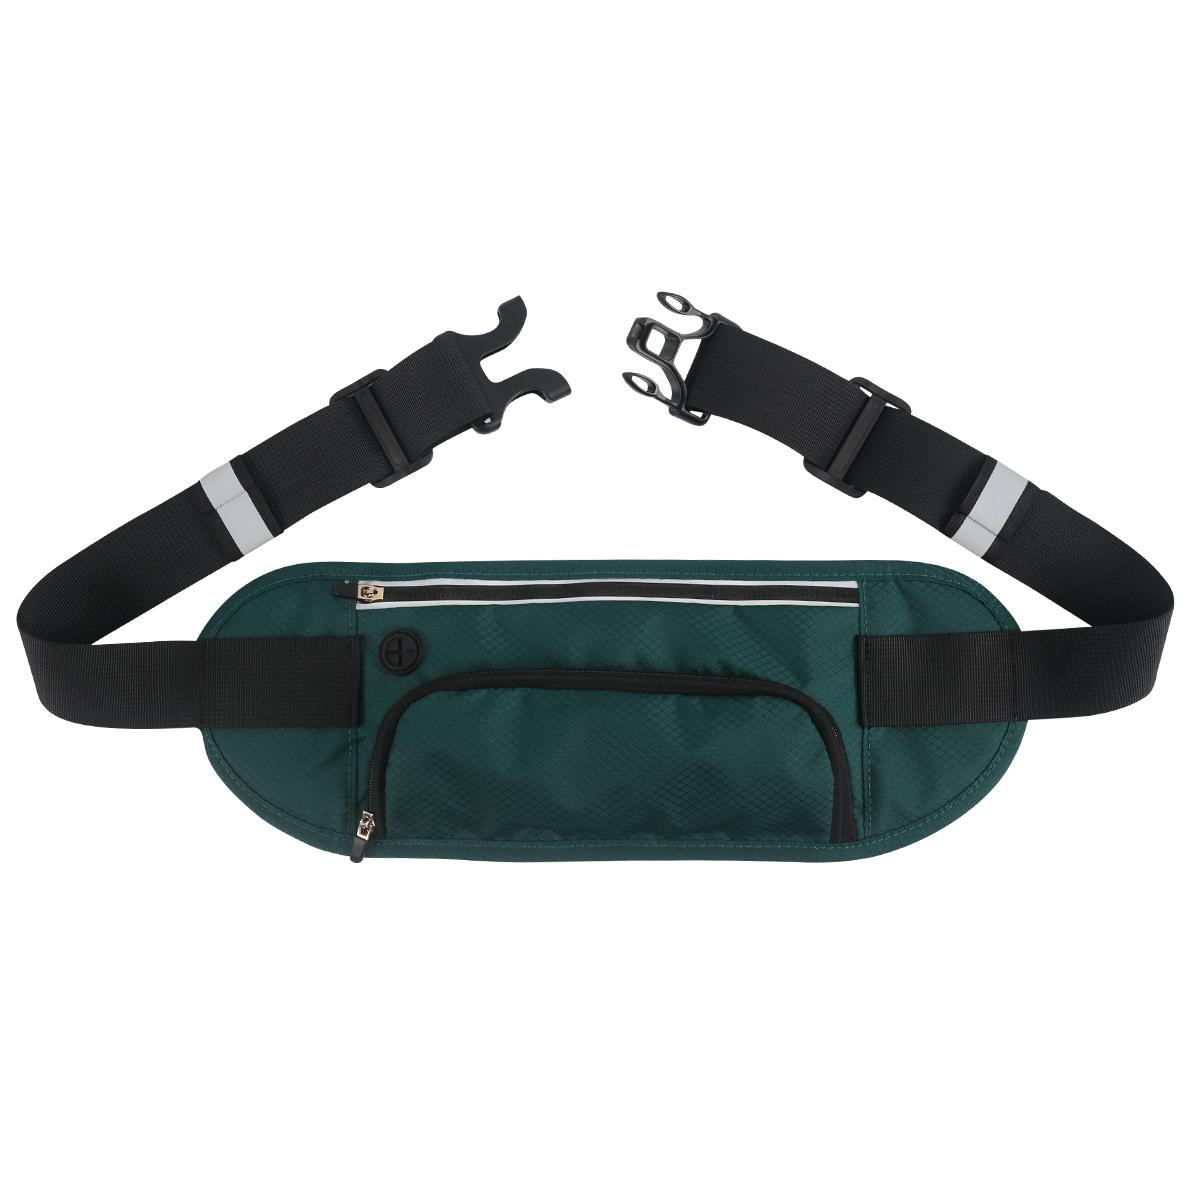 Sports belt bag, waist wallet, Pocket Belt with buckle design 2